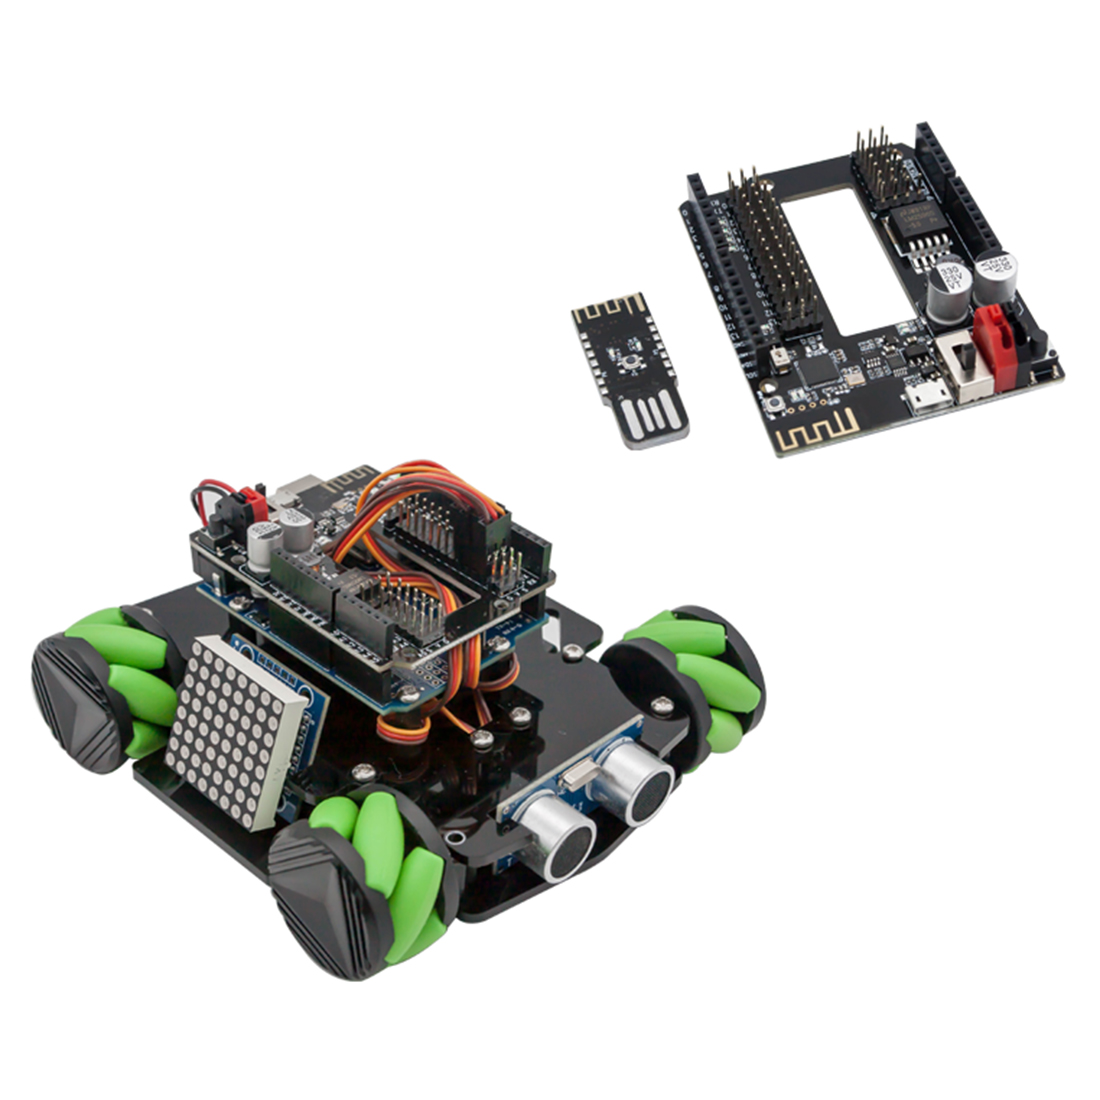 DIY Obstacle Avoidance Smart Programmable Robot Car Educational Learning Kit with Mecanum Wheels for Arduino UNO - 4 Sets 1